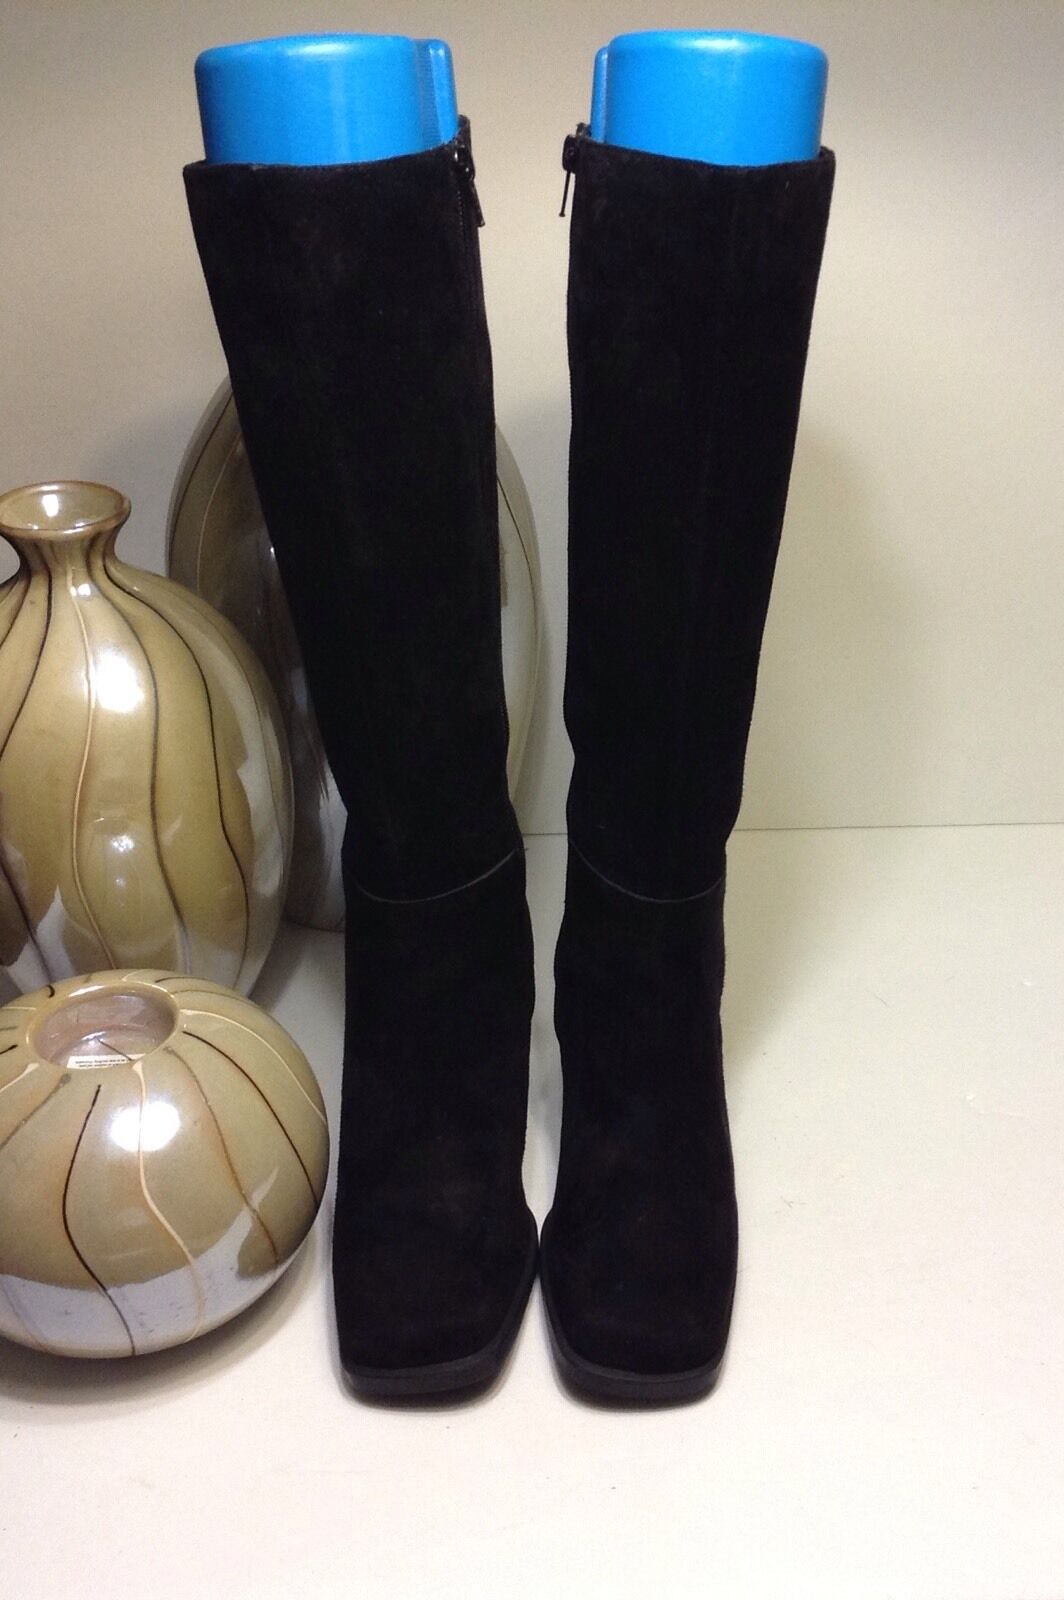 dazzling AMANDA SMITH velvety soft black suede leather side zip fashion boots 6M